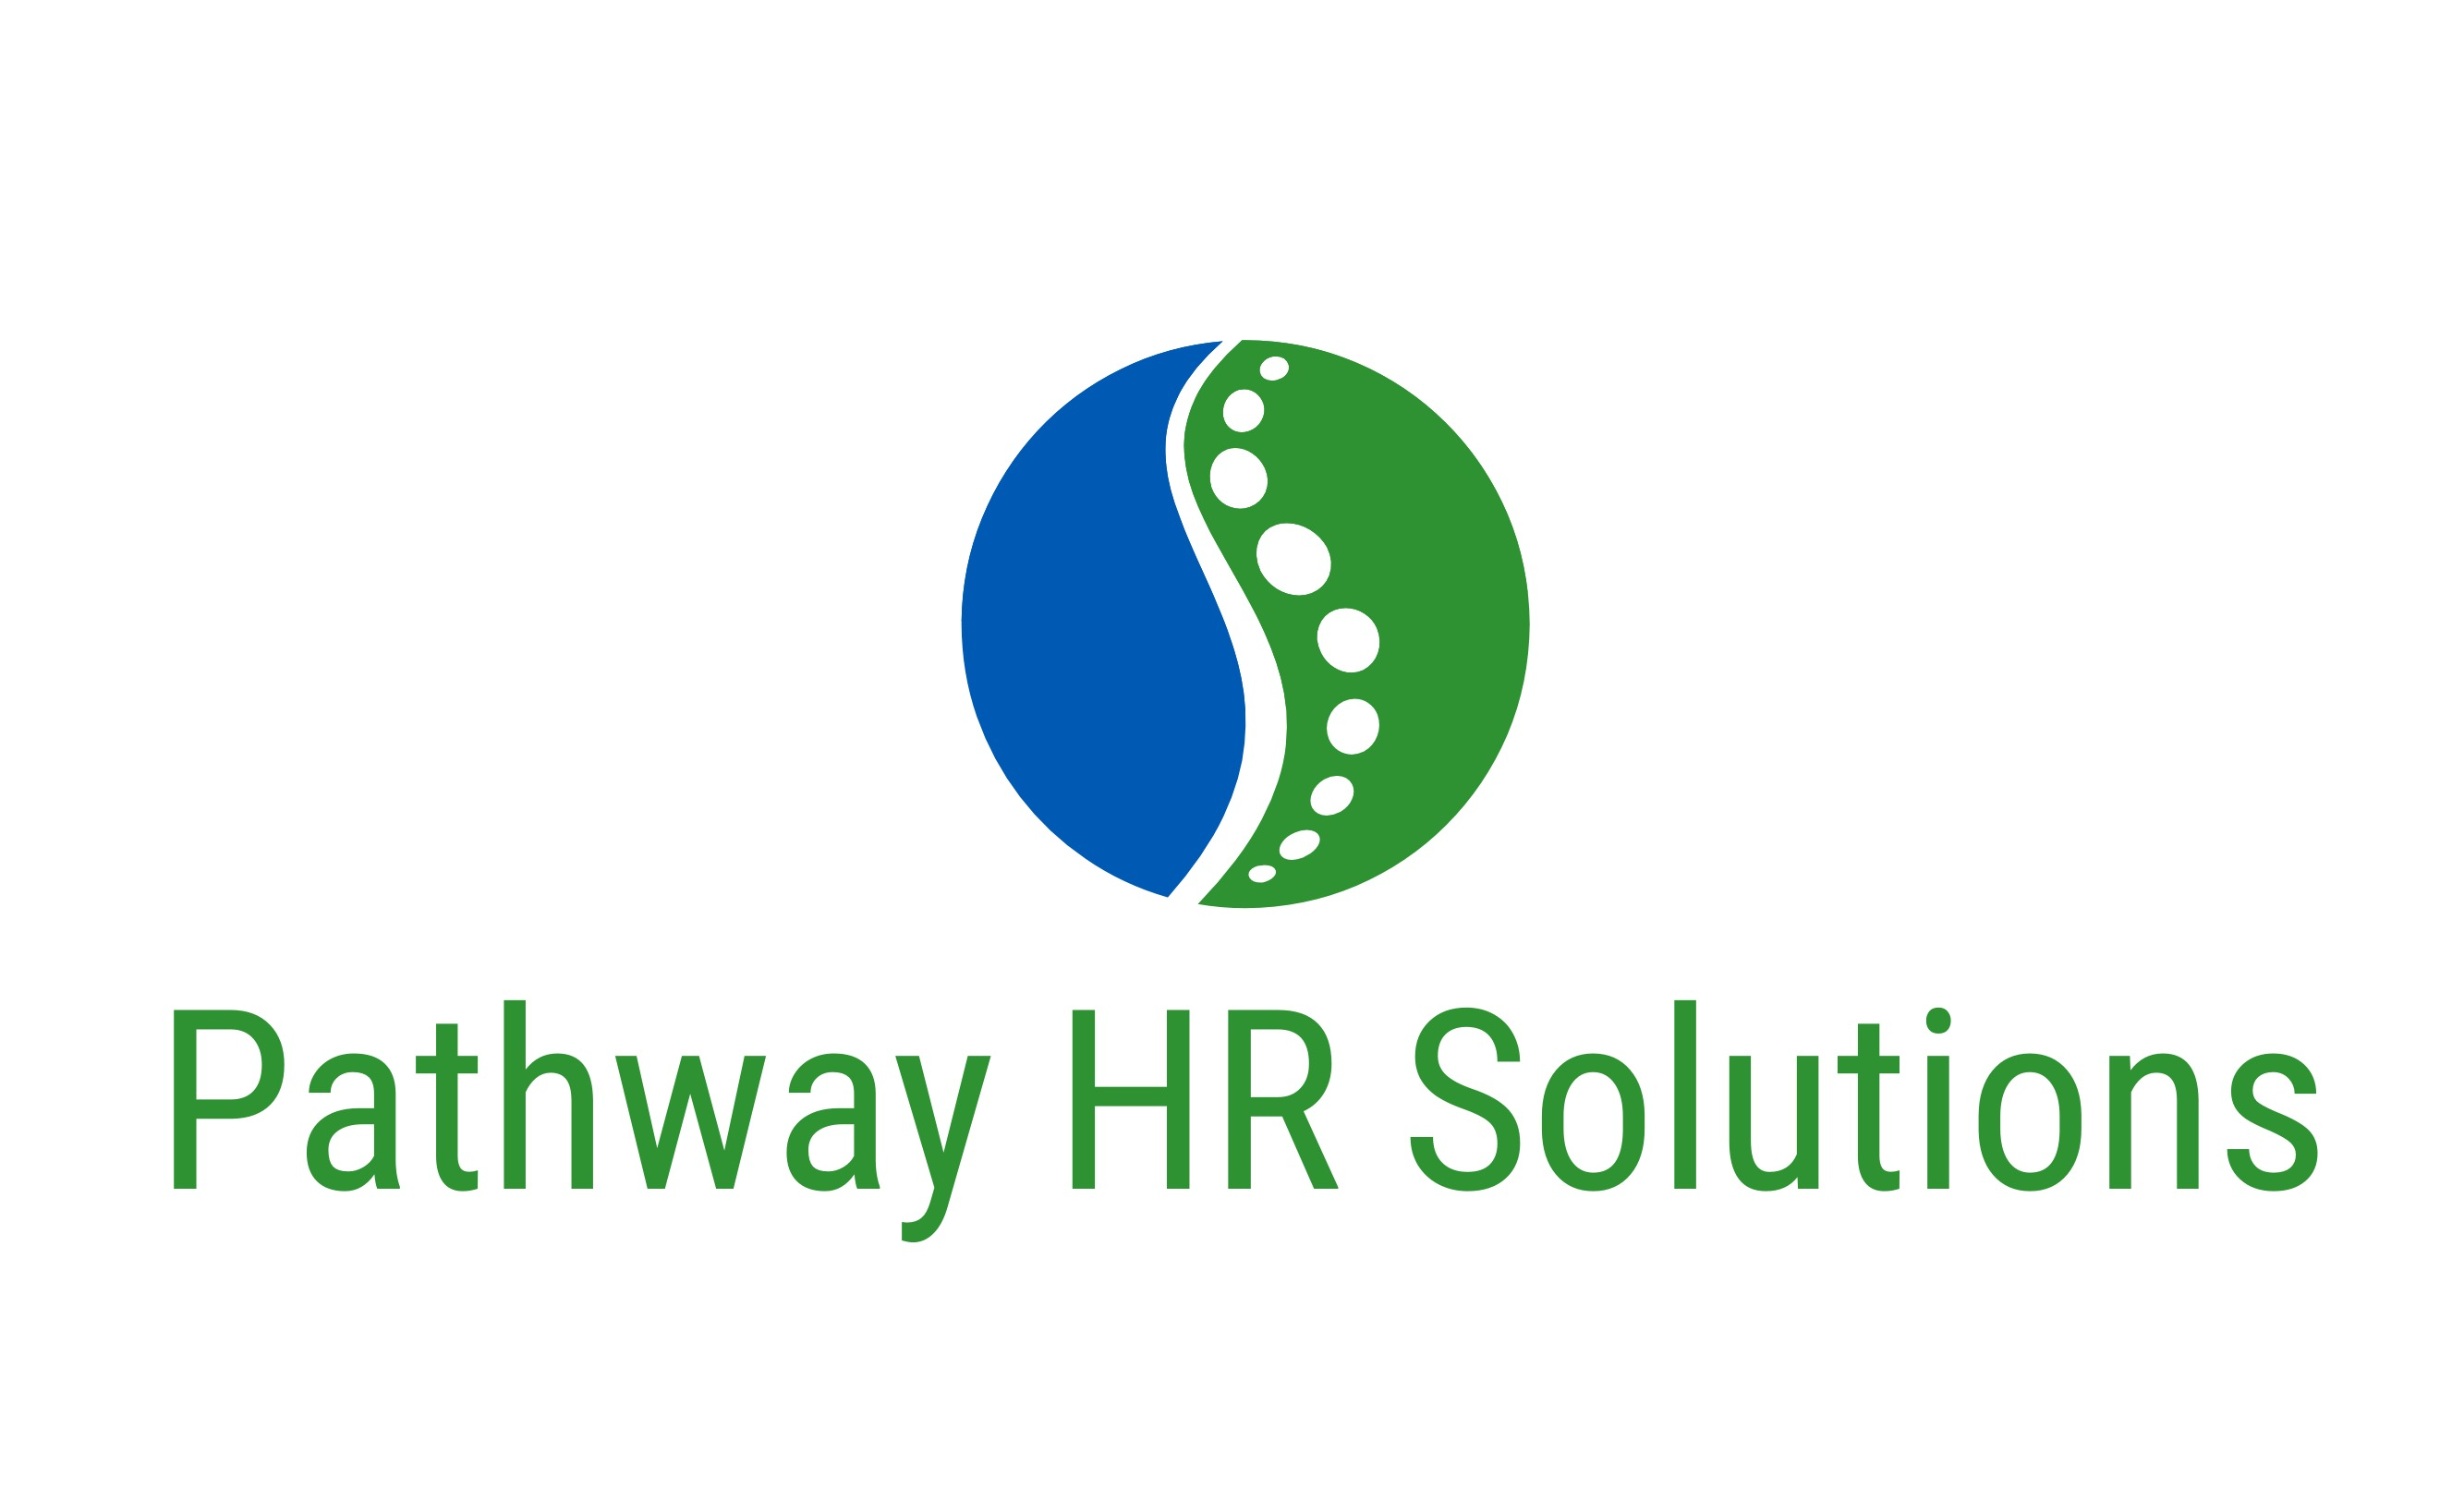 Pathway HR Solutions